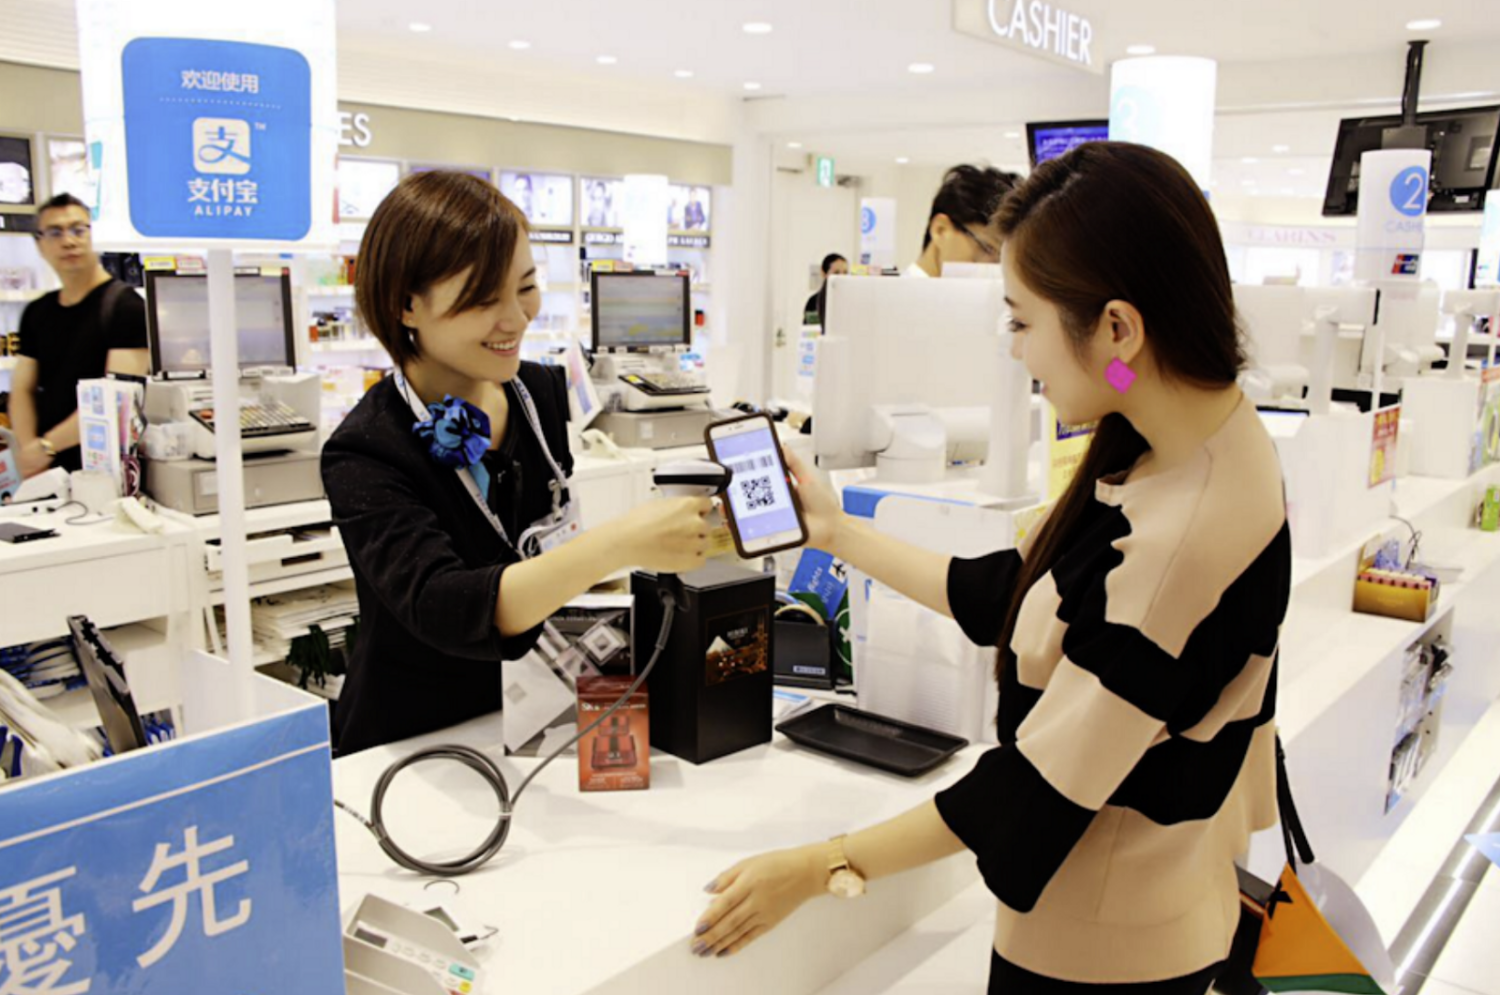 Finland becomes a cashless destination for Chinese travellers